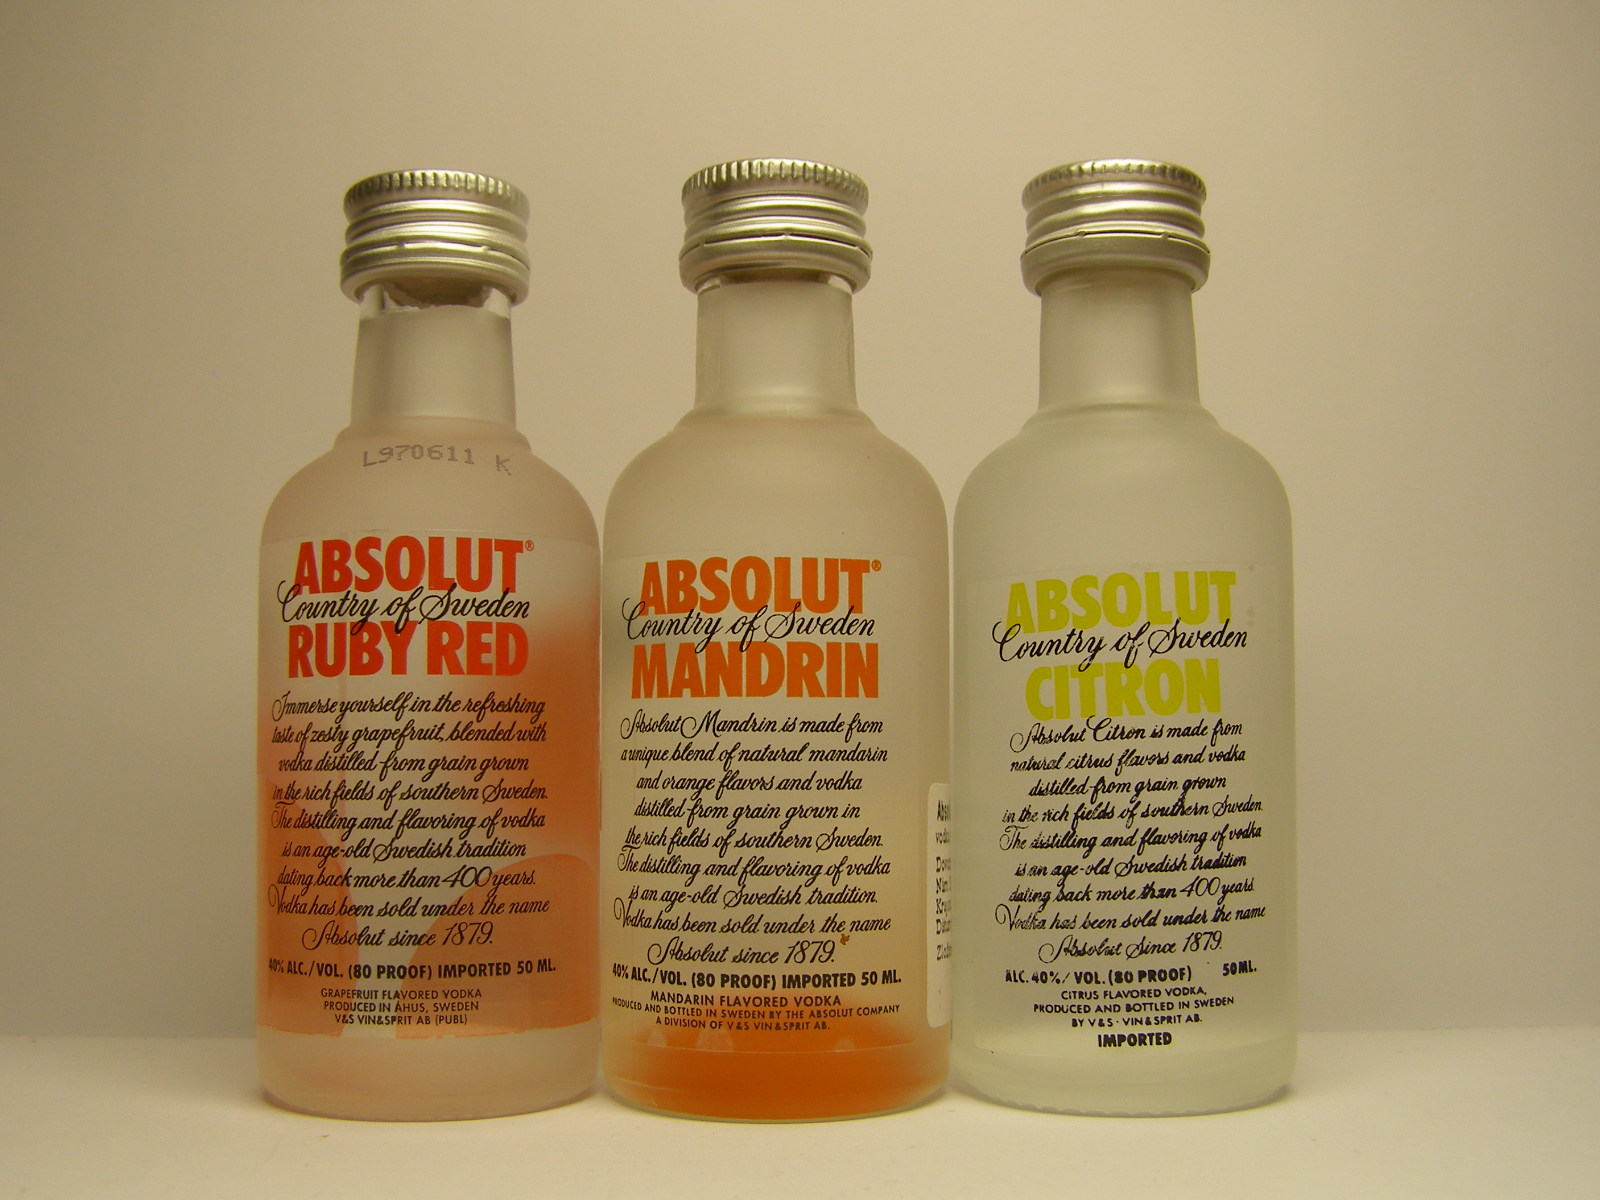 ABSOLUT Ruby Red - Mandrin - Citron